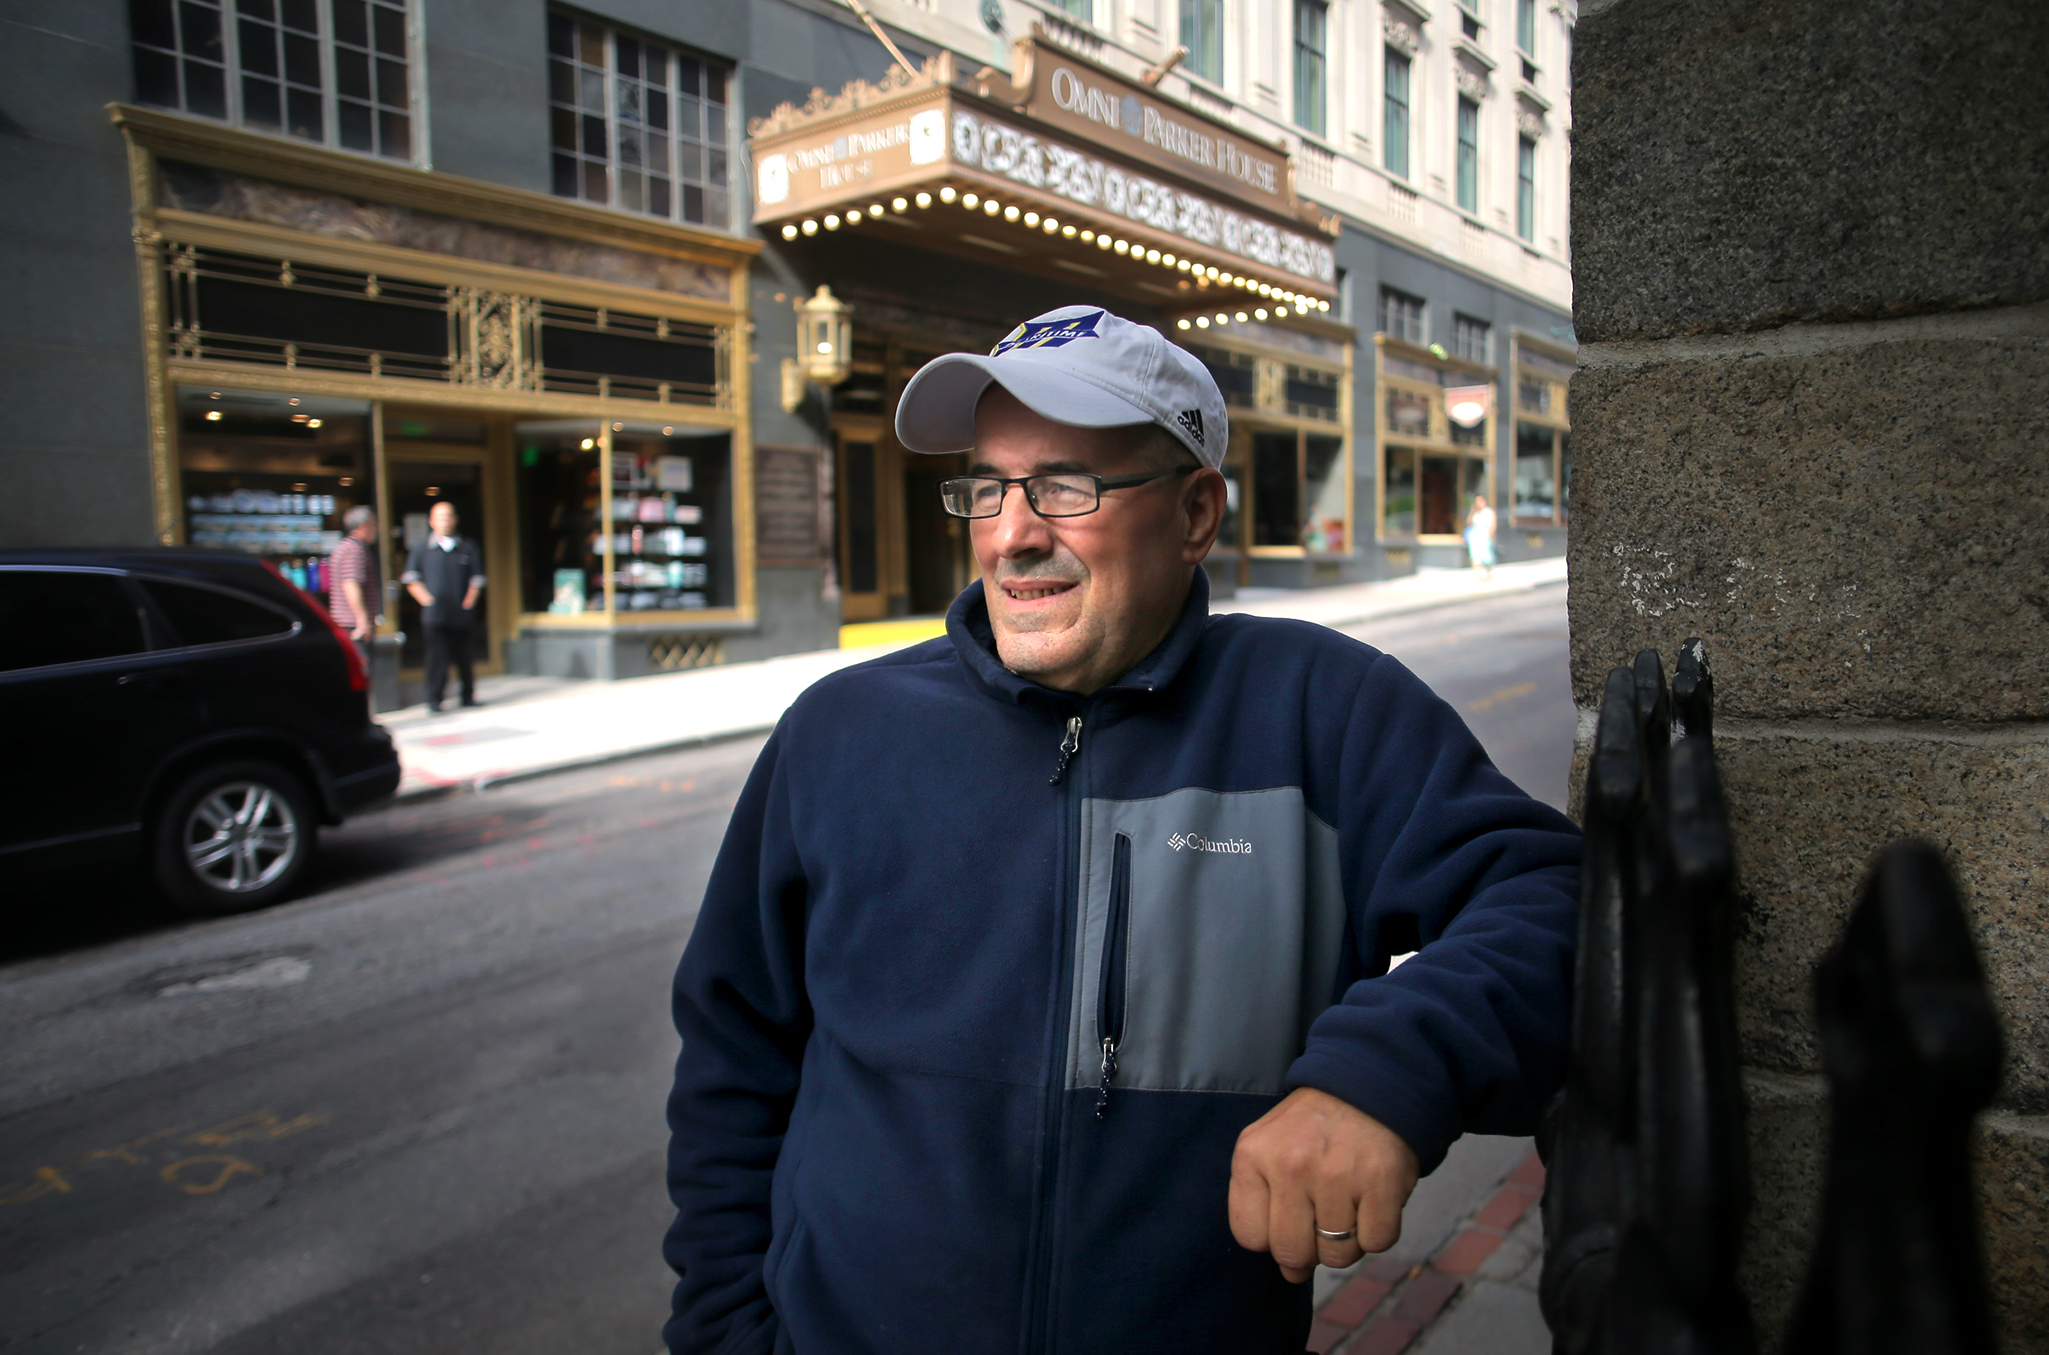 Mehidy Chafa stood outside the Omni Parker House where he works as a banquet server. He was happy to return to work after he was furloughed during the pandemic.